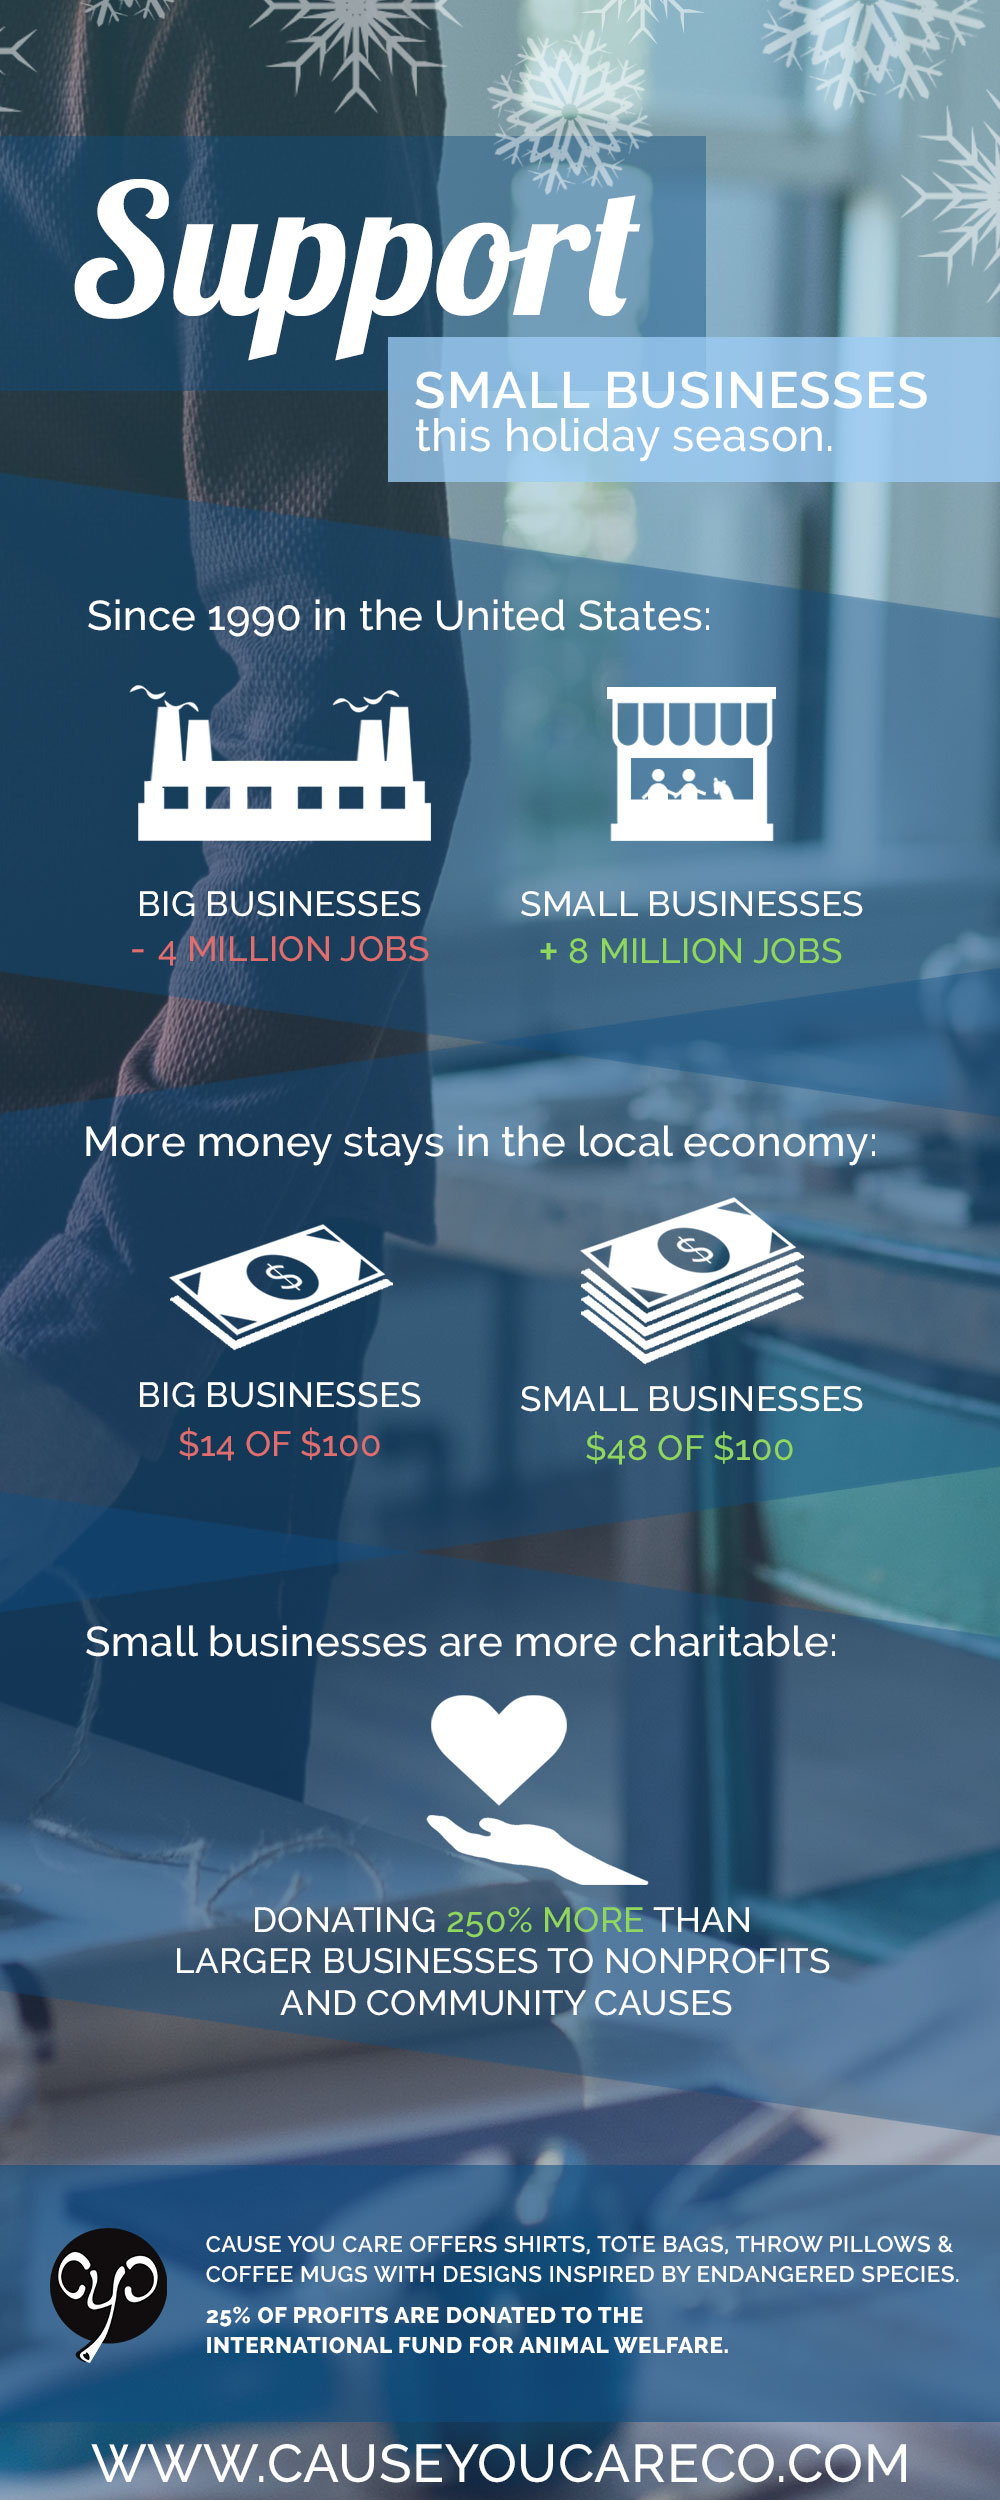 Support Small Businesses Infographic | Cause You Care